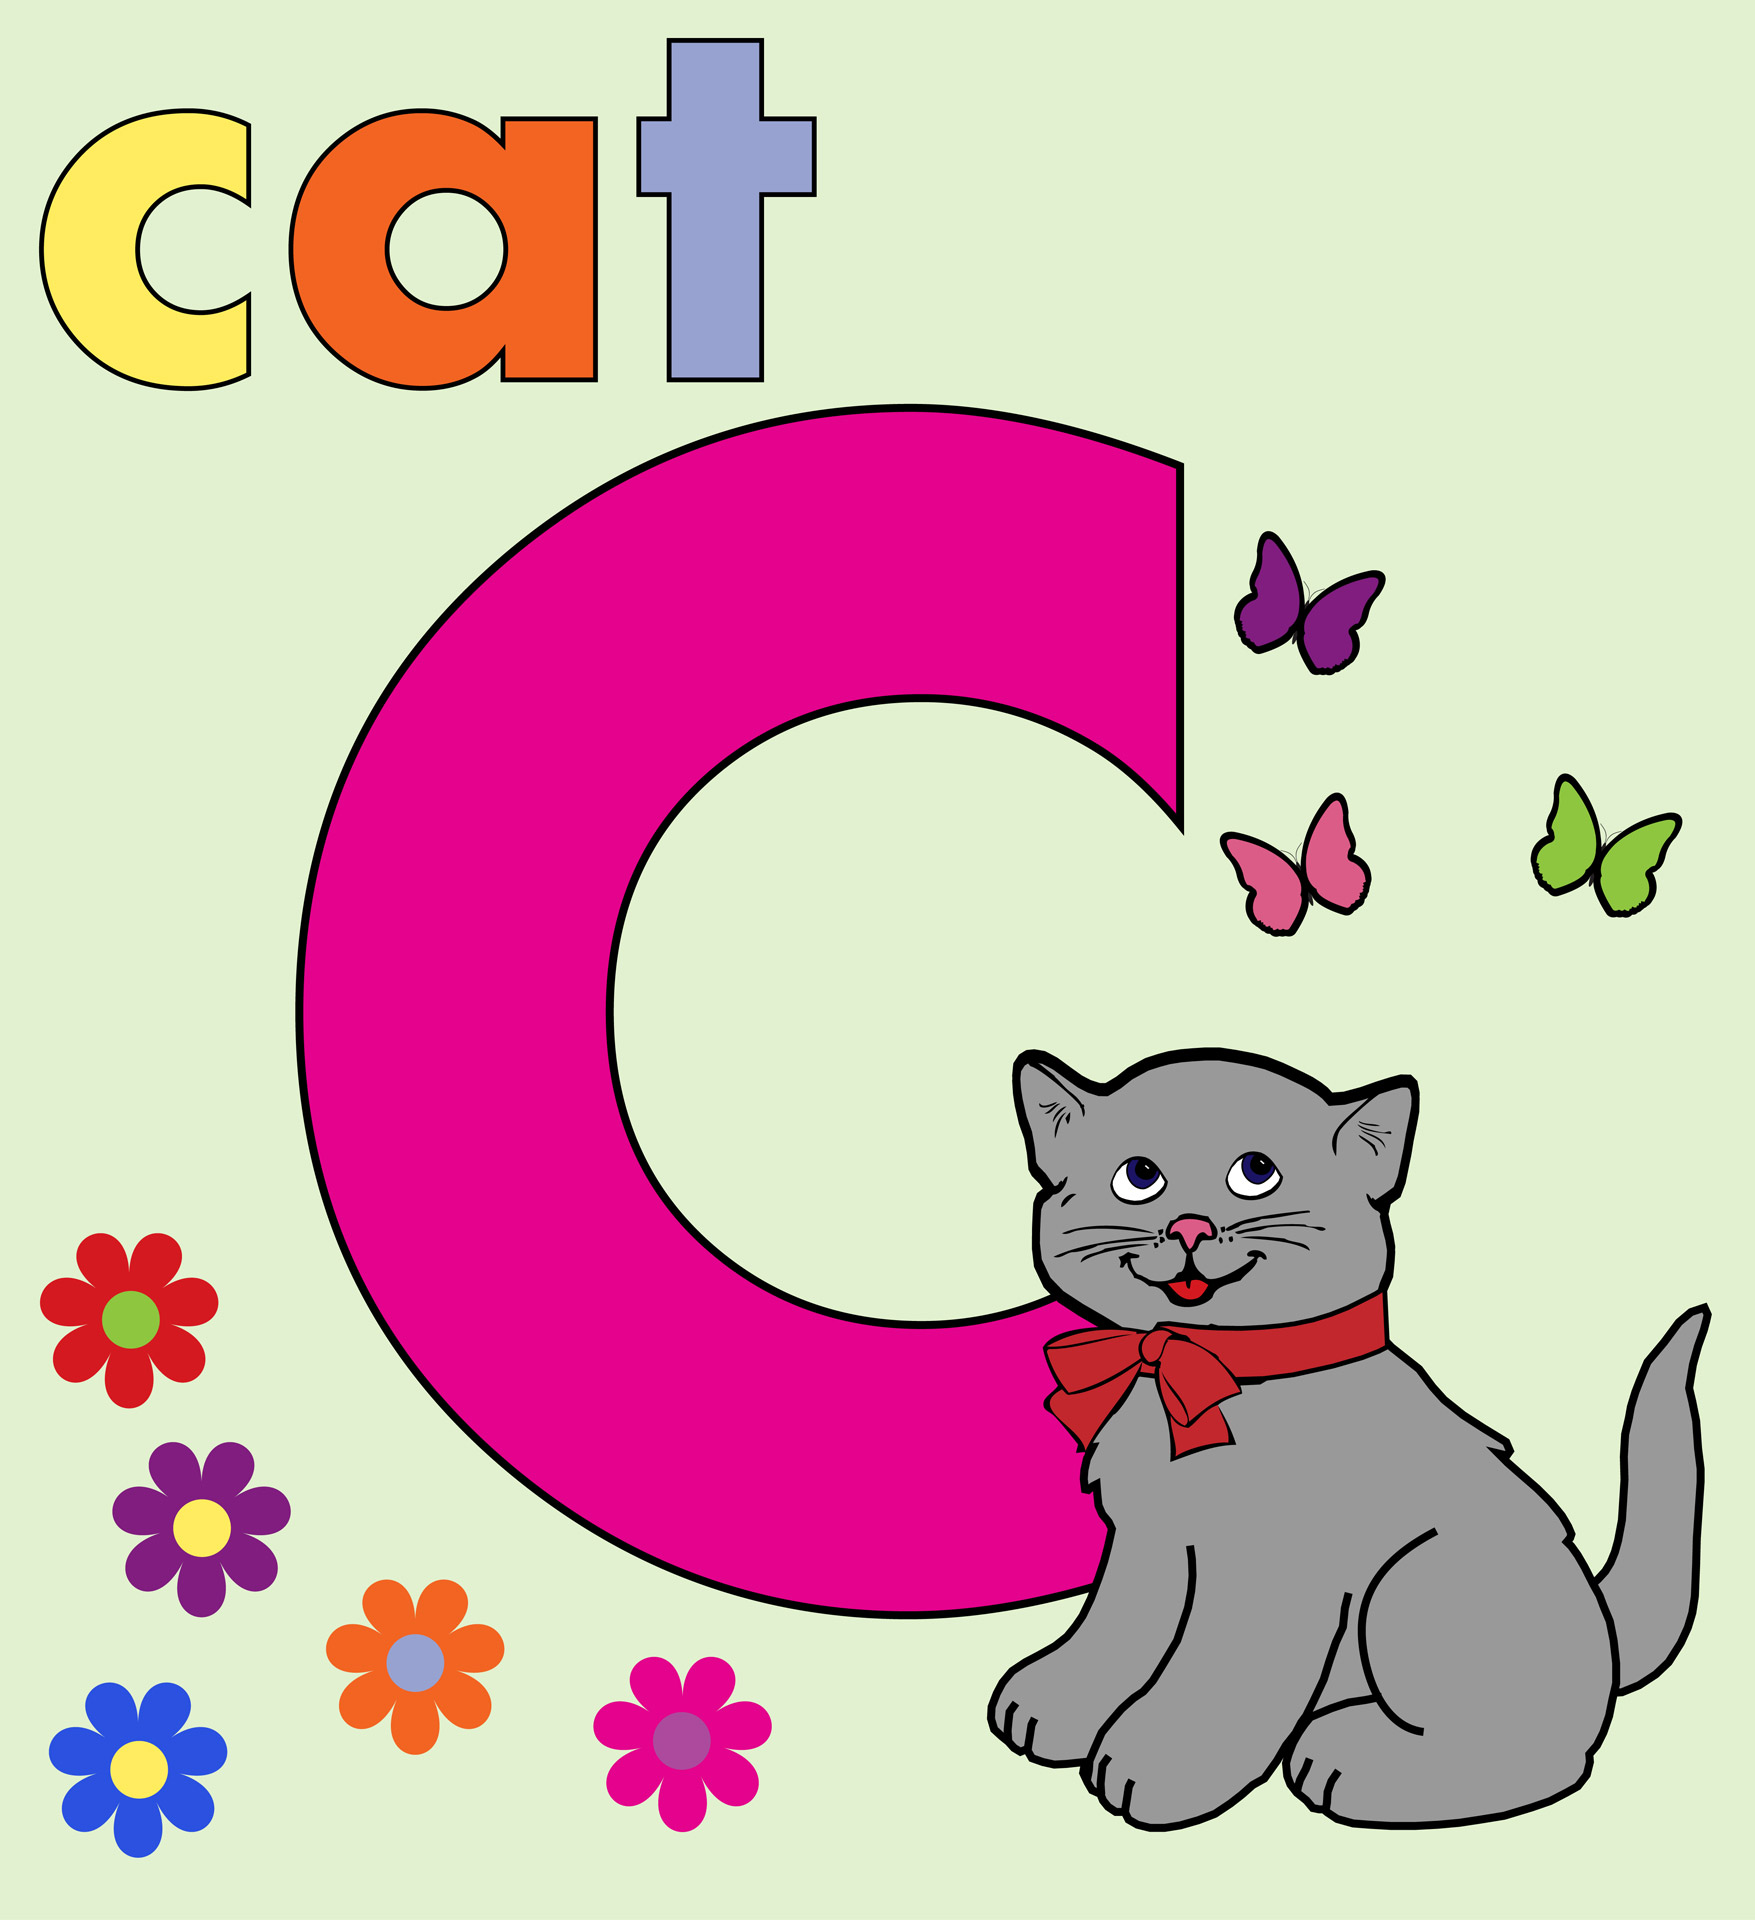 Cat Alphabet Letter C Free Stock Photo